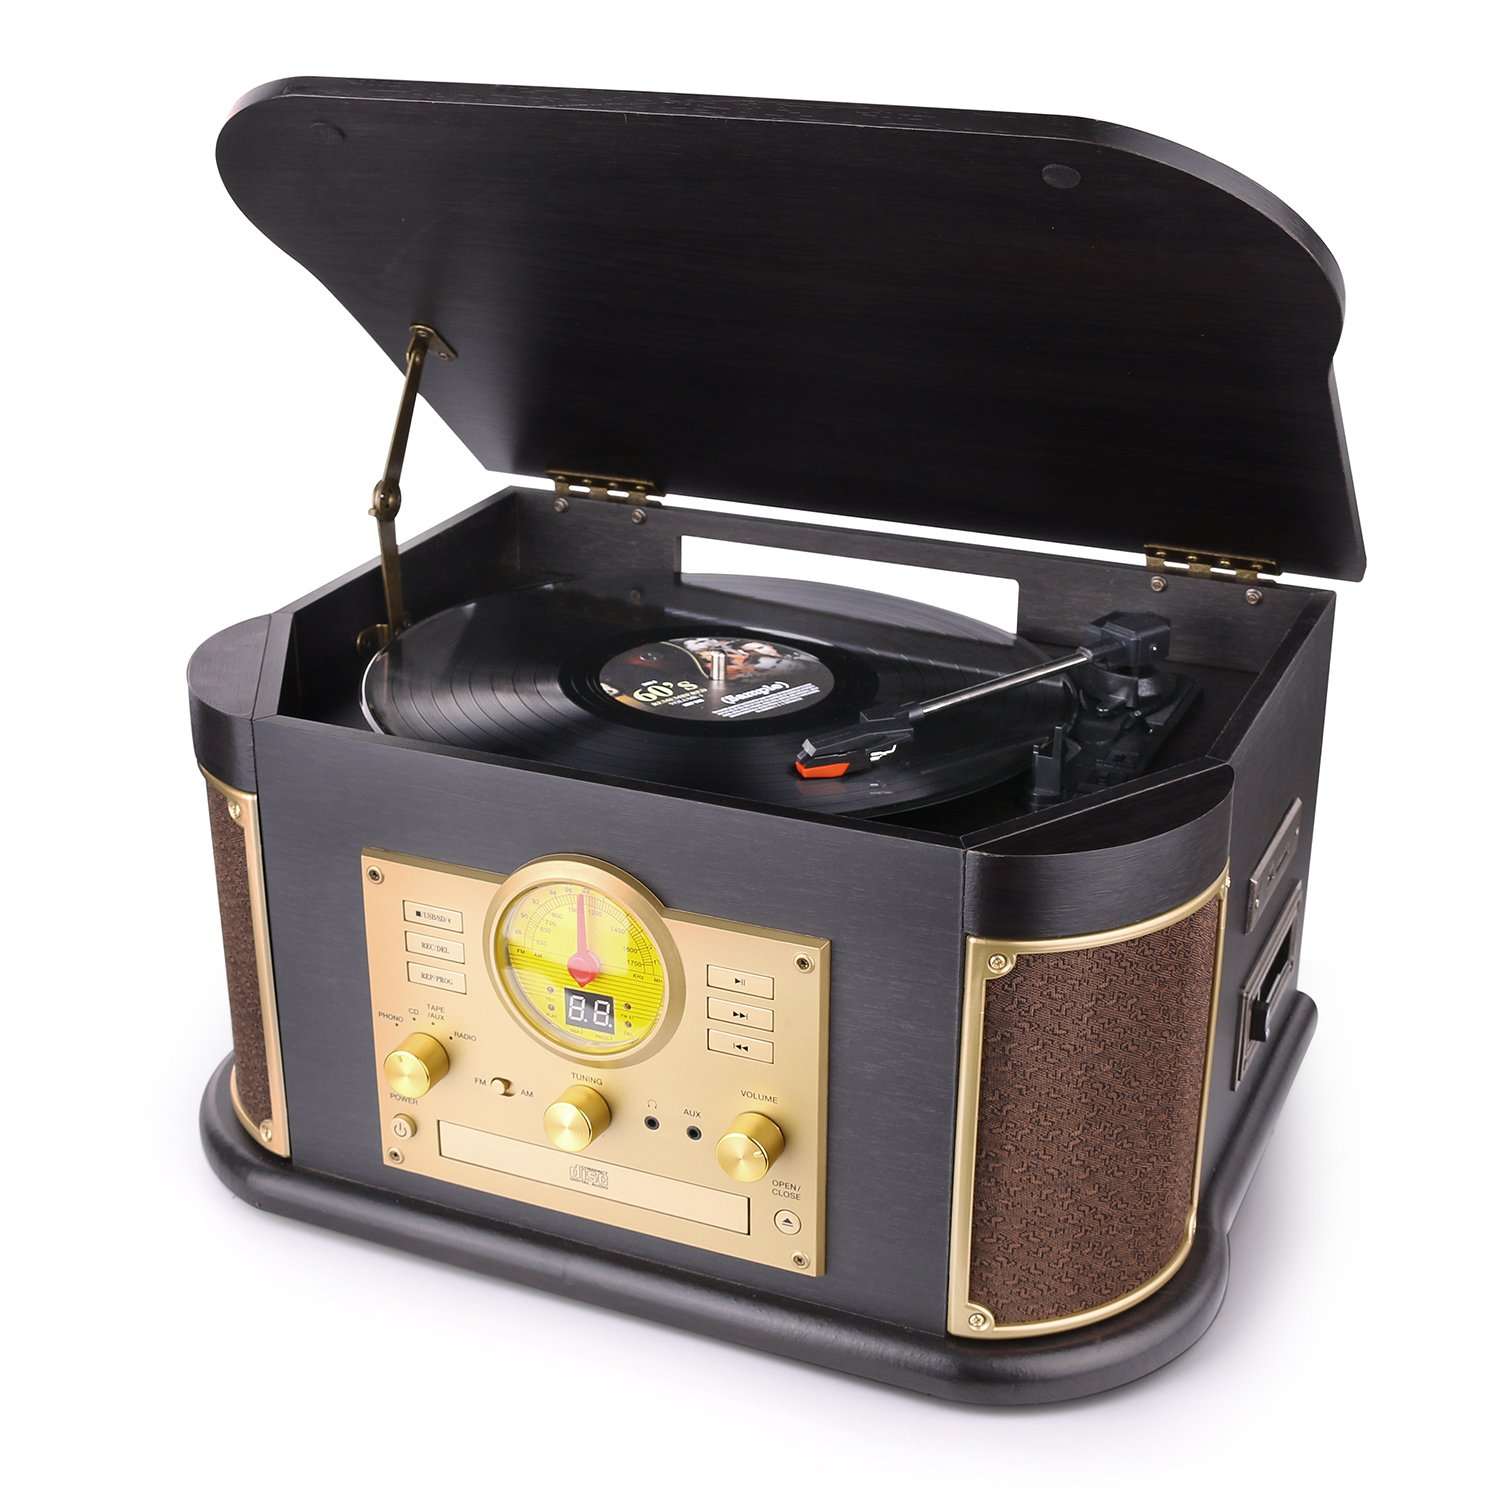 D&L Vintage Record Player, Wooden Turntable, 7-in-1 Bluetooth Phonograph with Built-in Stereo Speakers, CD/Cassette Player, FM Radio, USB/SD Play & Encoding,Turntable for Vinyl Records by D&L